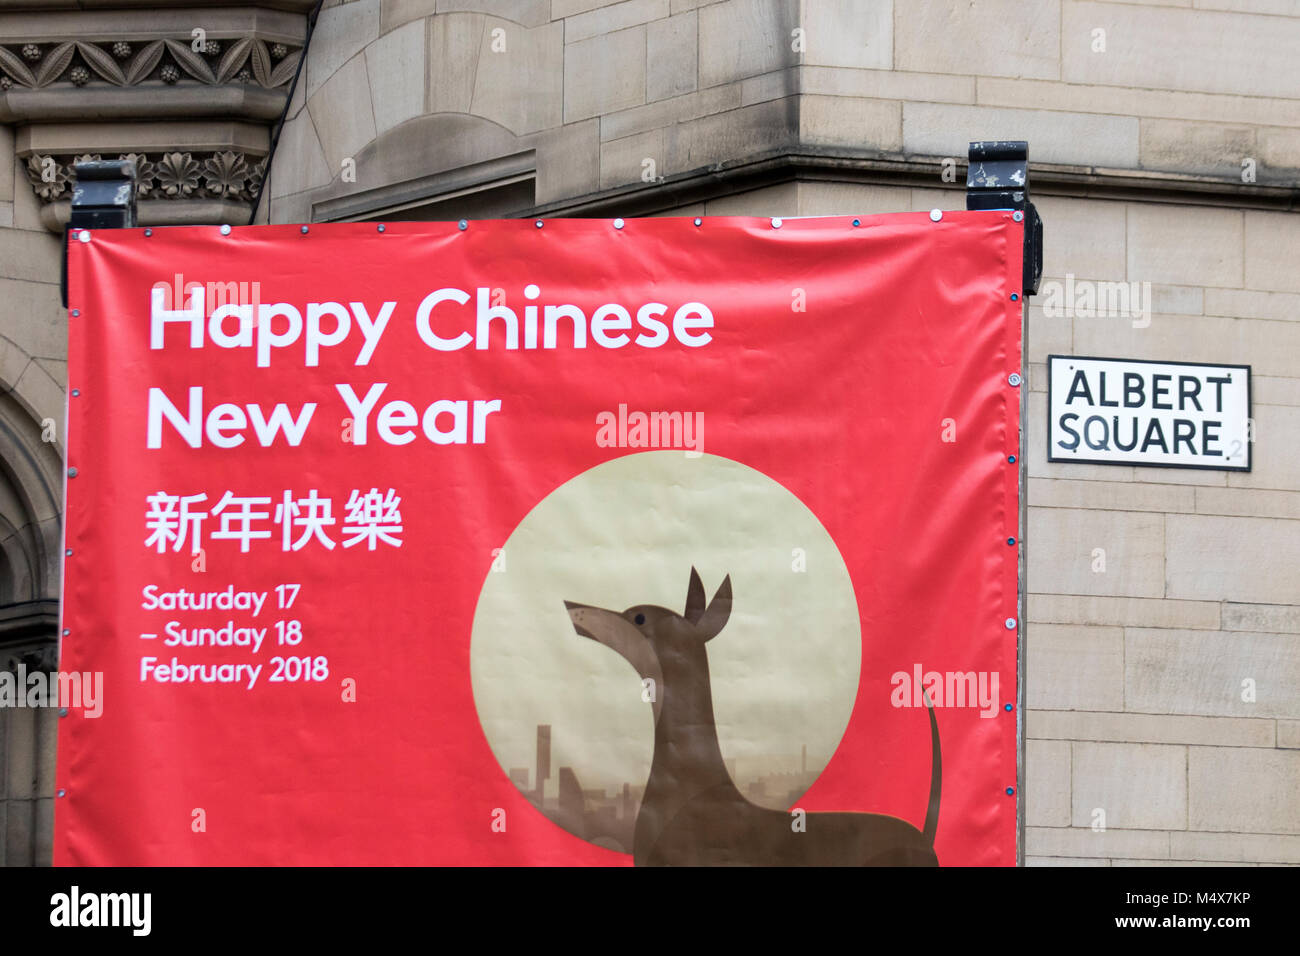 happy chinese new year banner in albert square manchester city centre